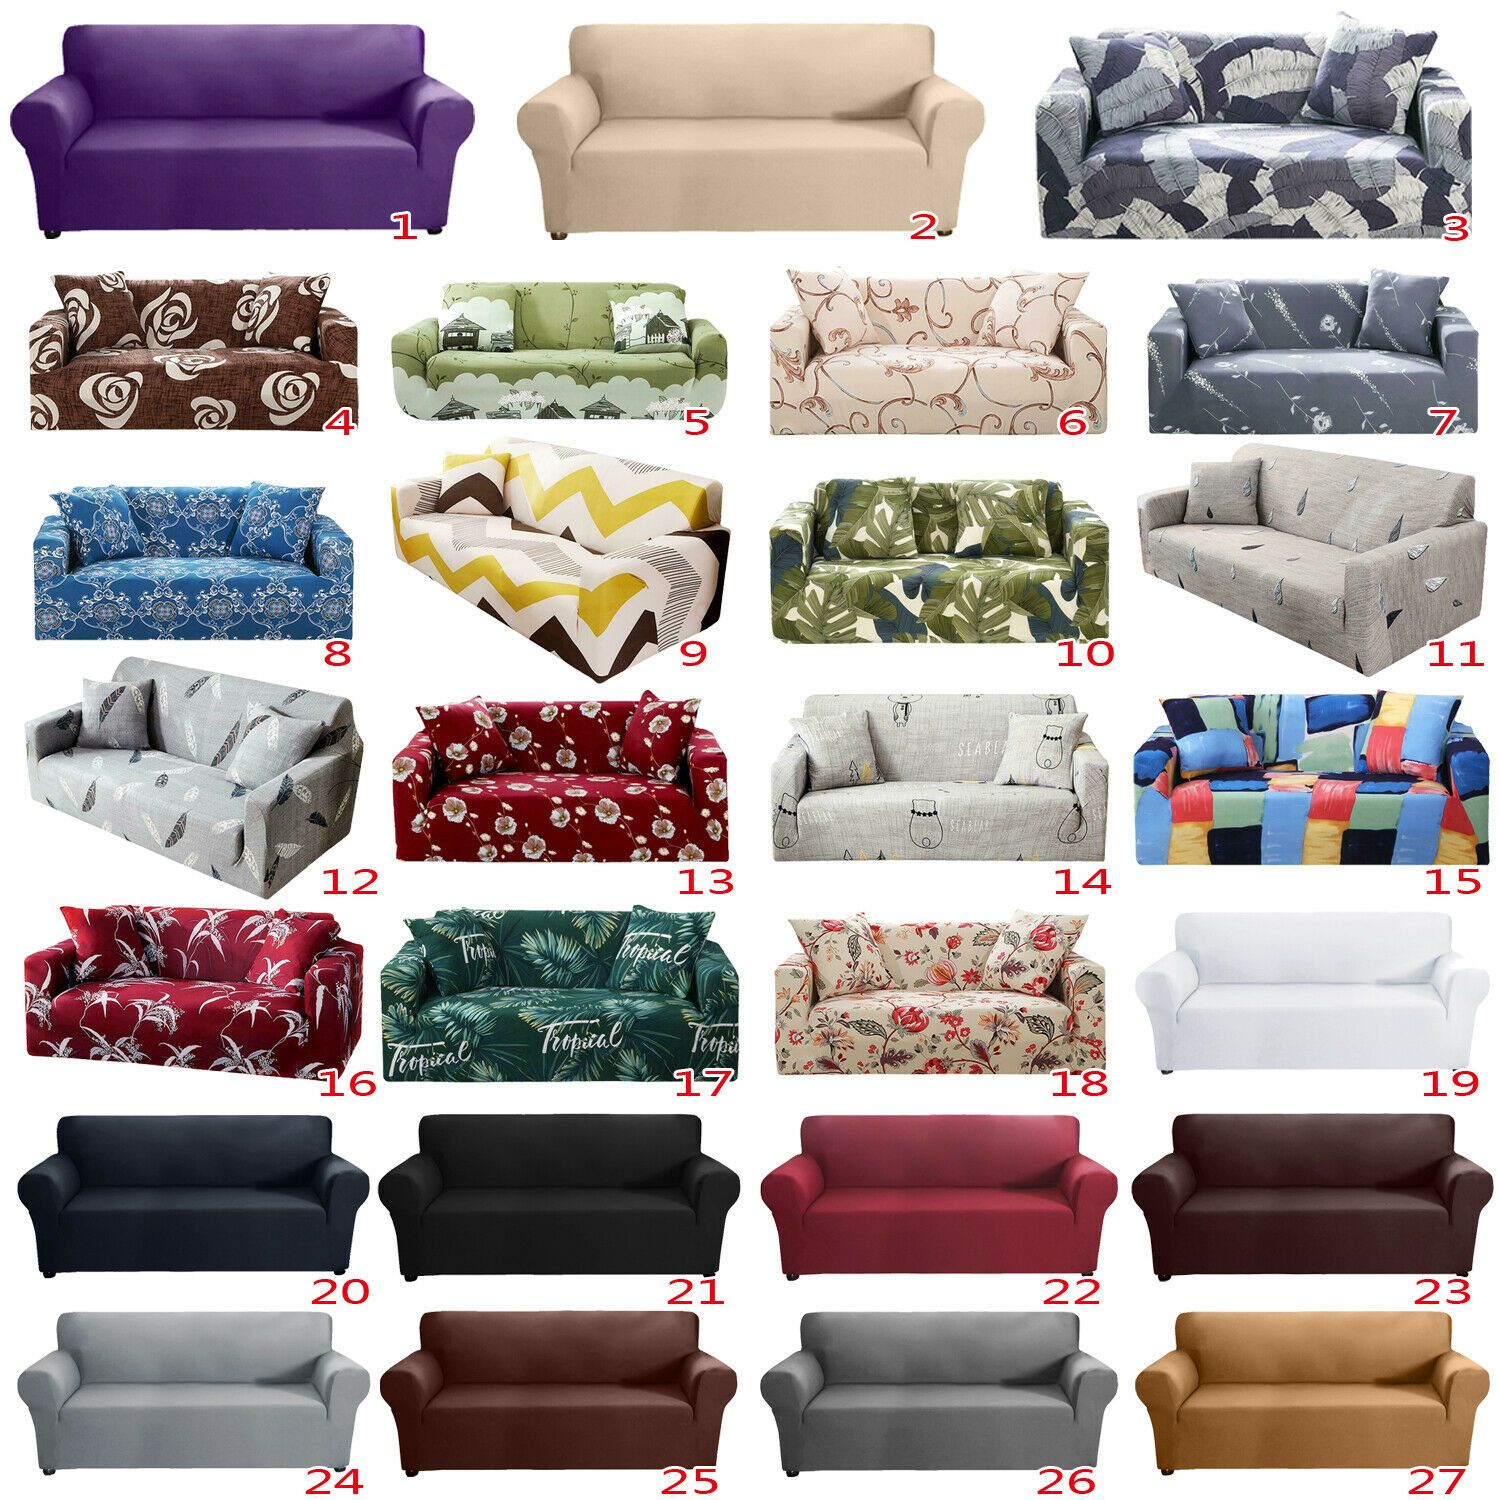 1 4 Seater Elastic Slipcover Sofa Covers Stretch Couch Cover Furniture Protector Sofa Slipcover Ideas Of Sofa Sli In 2020 Slipcovered Sofa Sofa Covers Couch Covers